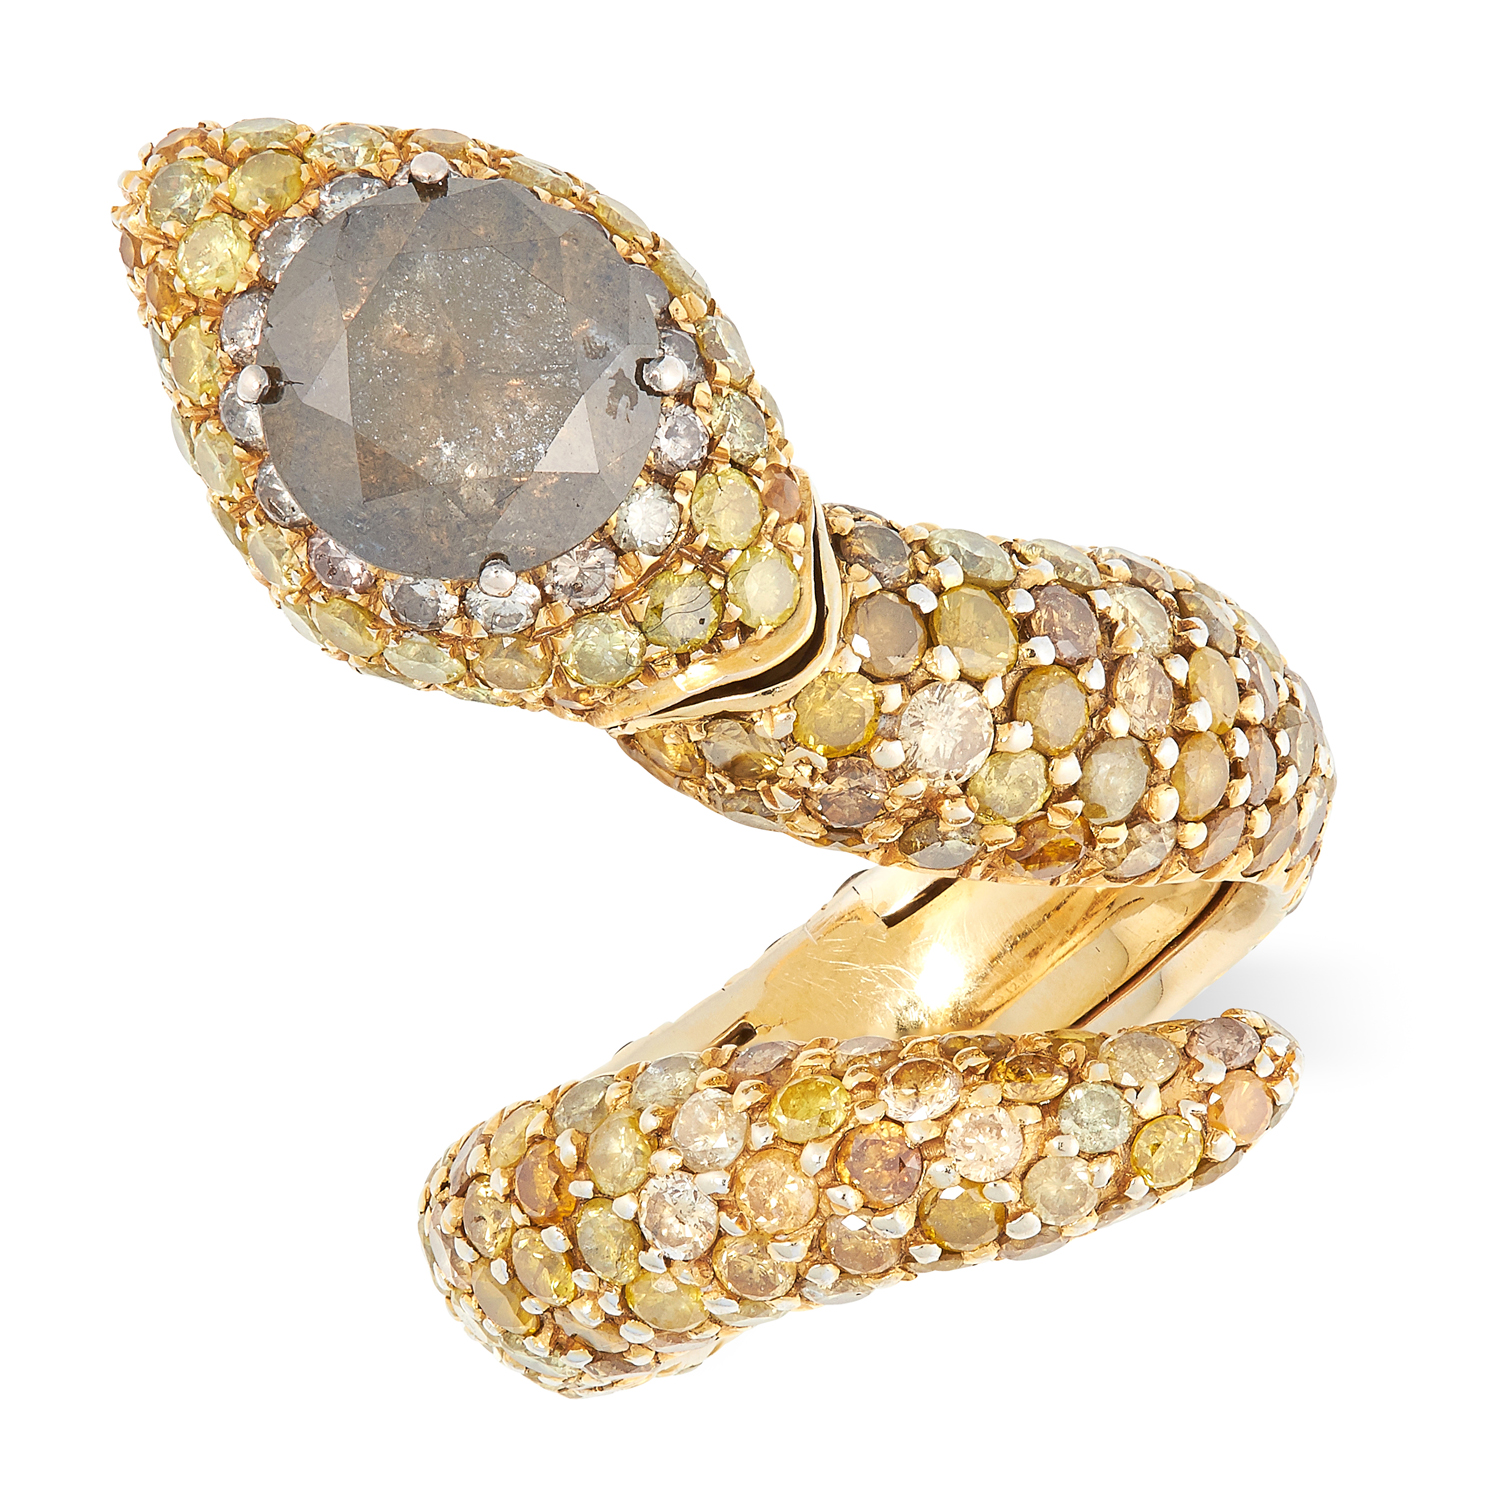 A YELLOW AND BROWN DIAMOND SNAKE RING the articulated body set with round brilliant cut yellow